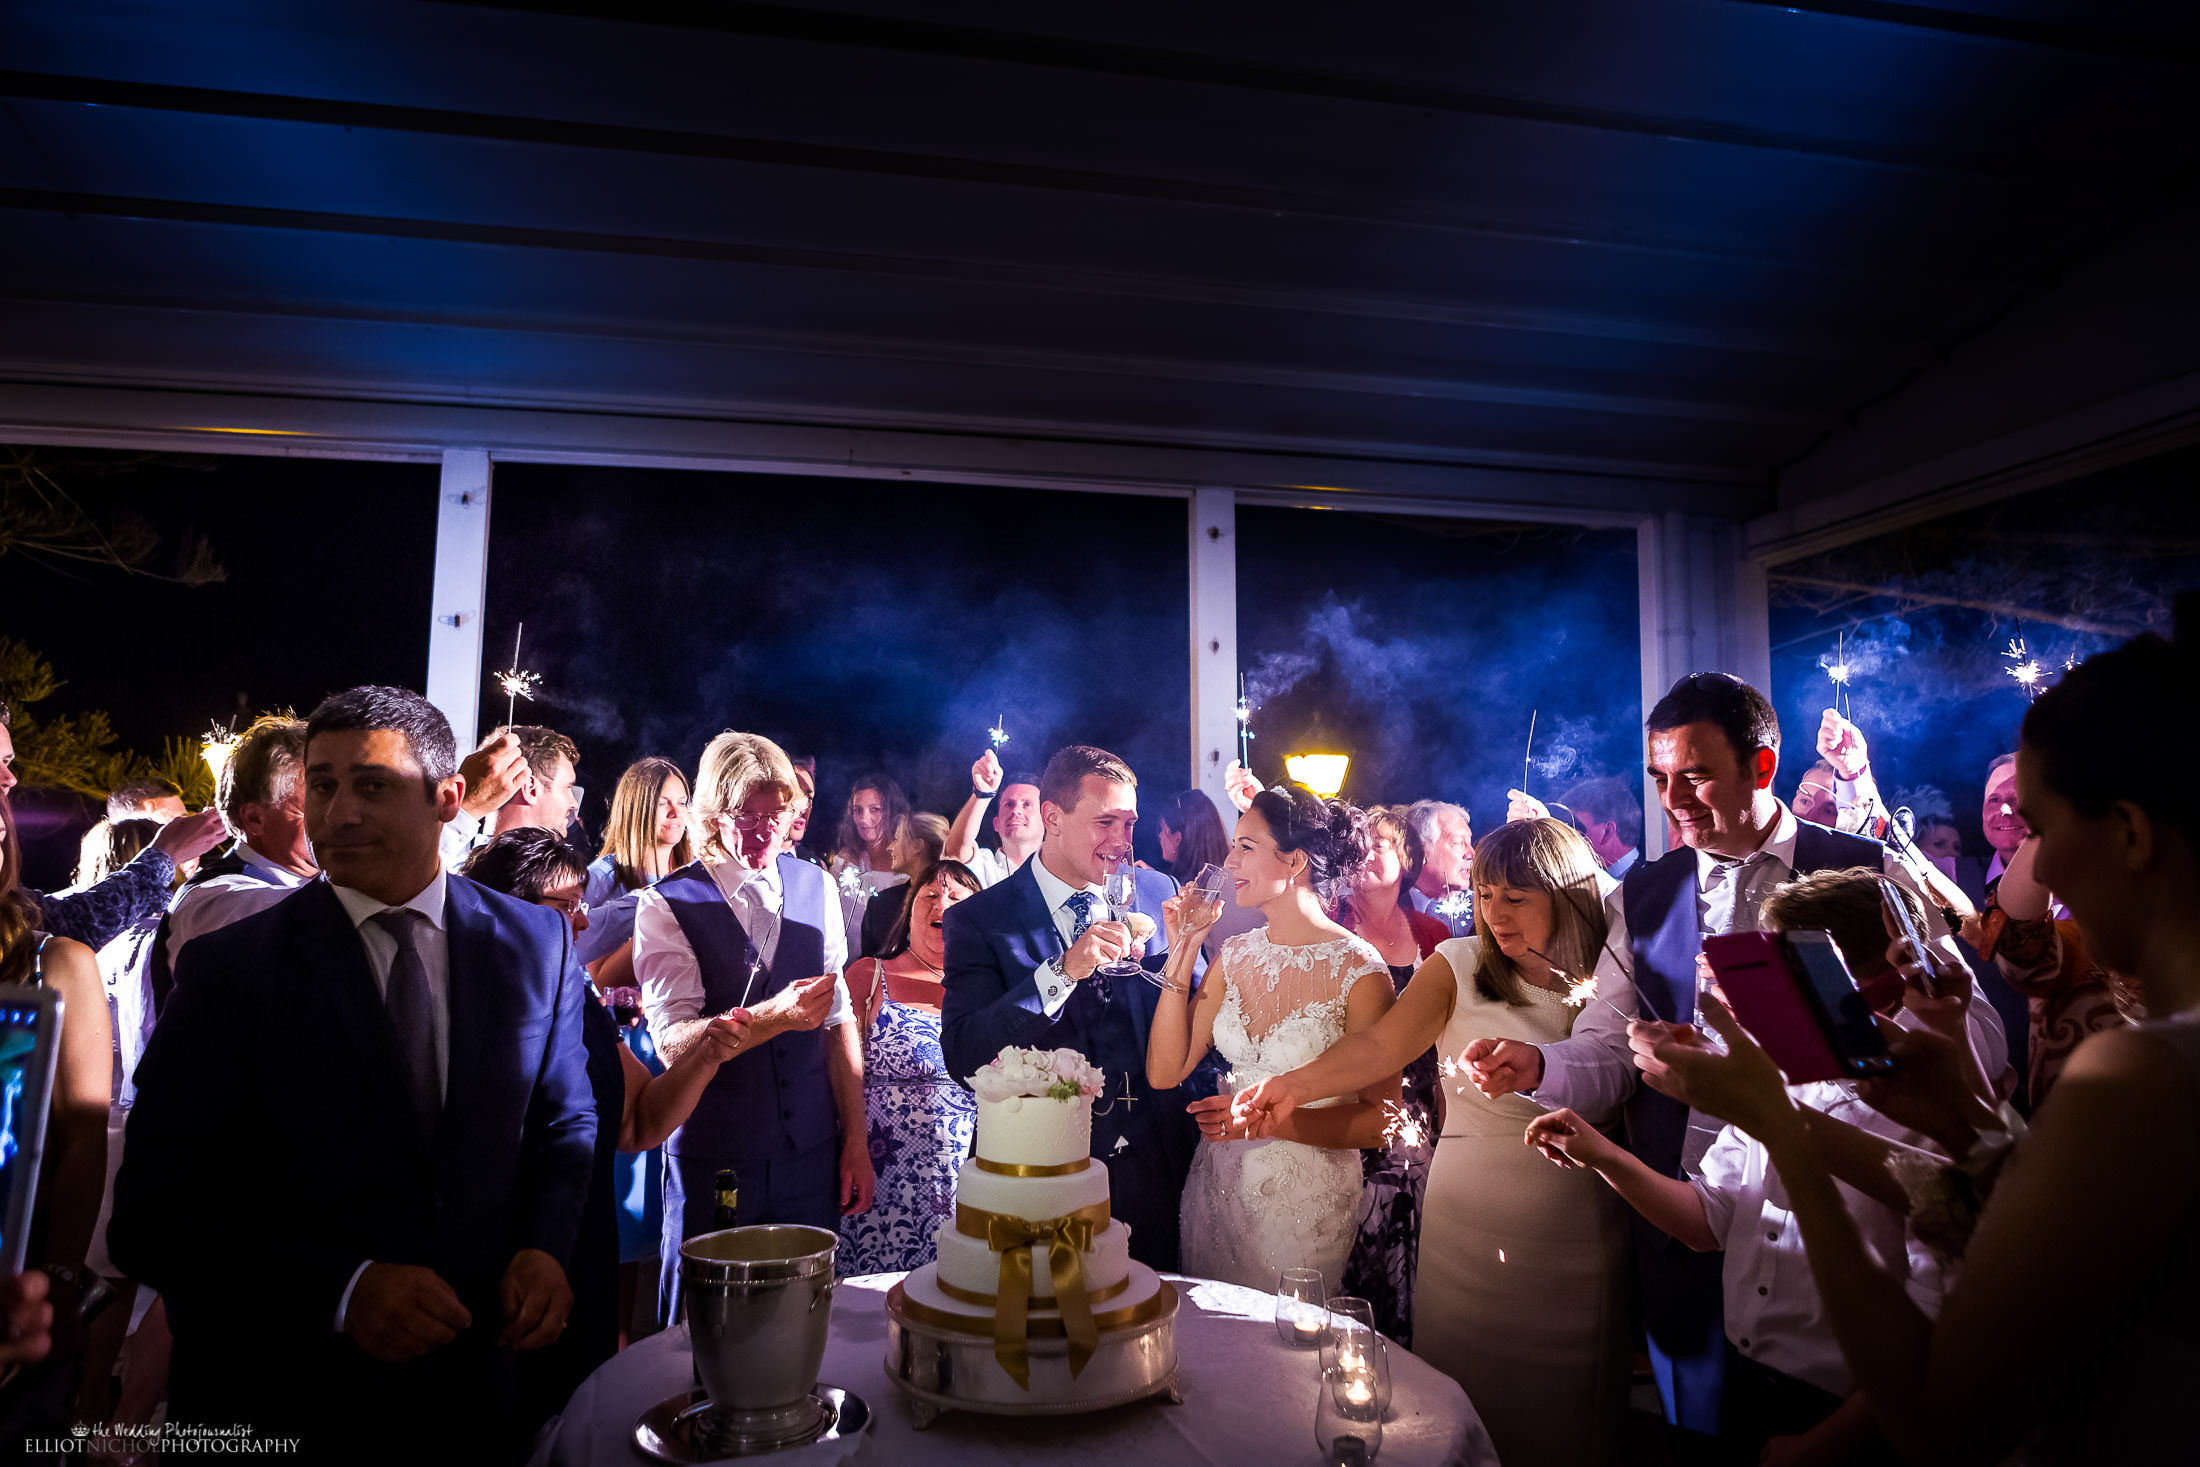 Bride and groom drink champagne together after cutting their wedding cake surrounded by friends and family. Photo by Elliot Nichol, the wedding photojournalist based in Newcastle Upon Tyne.